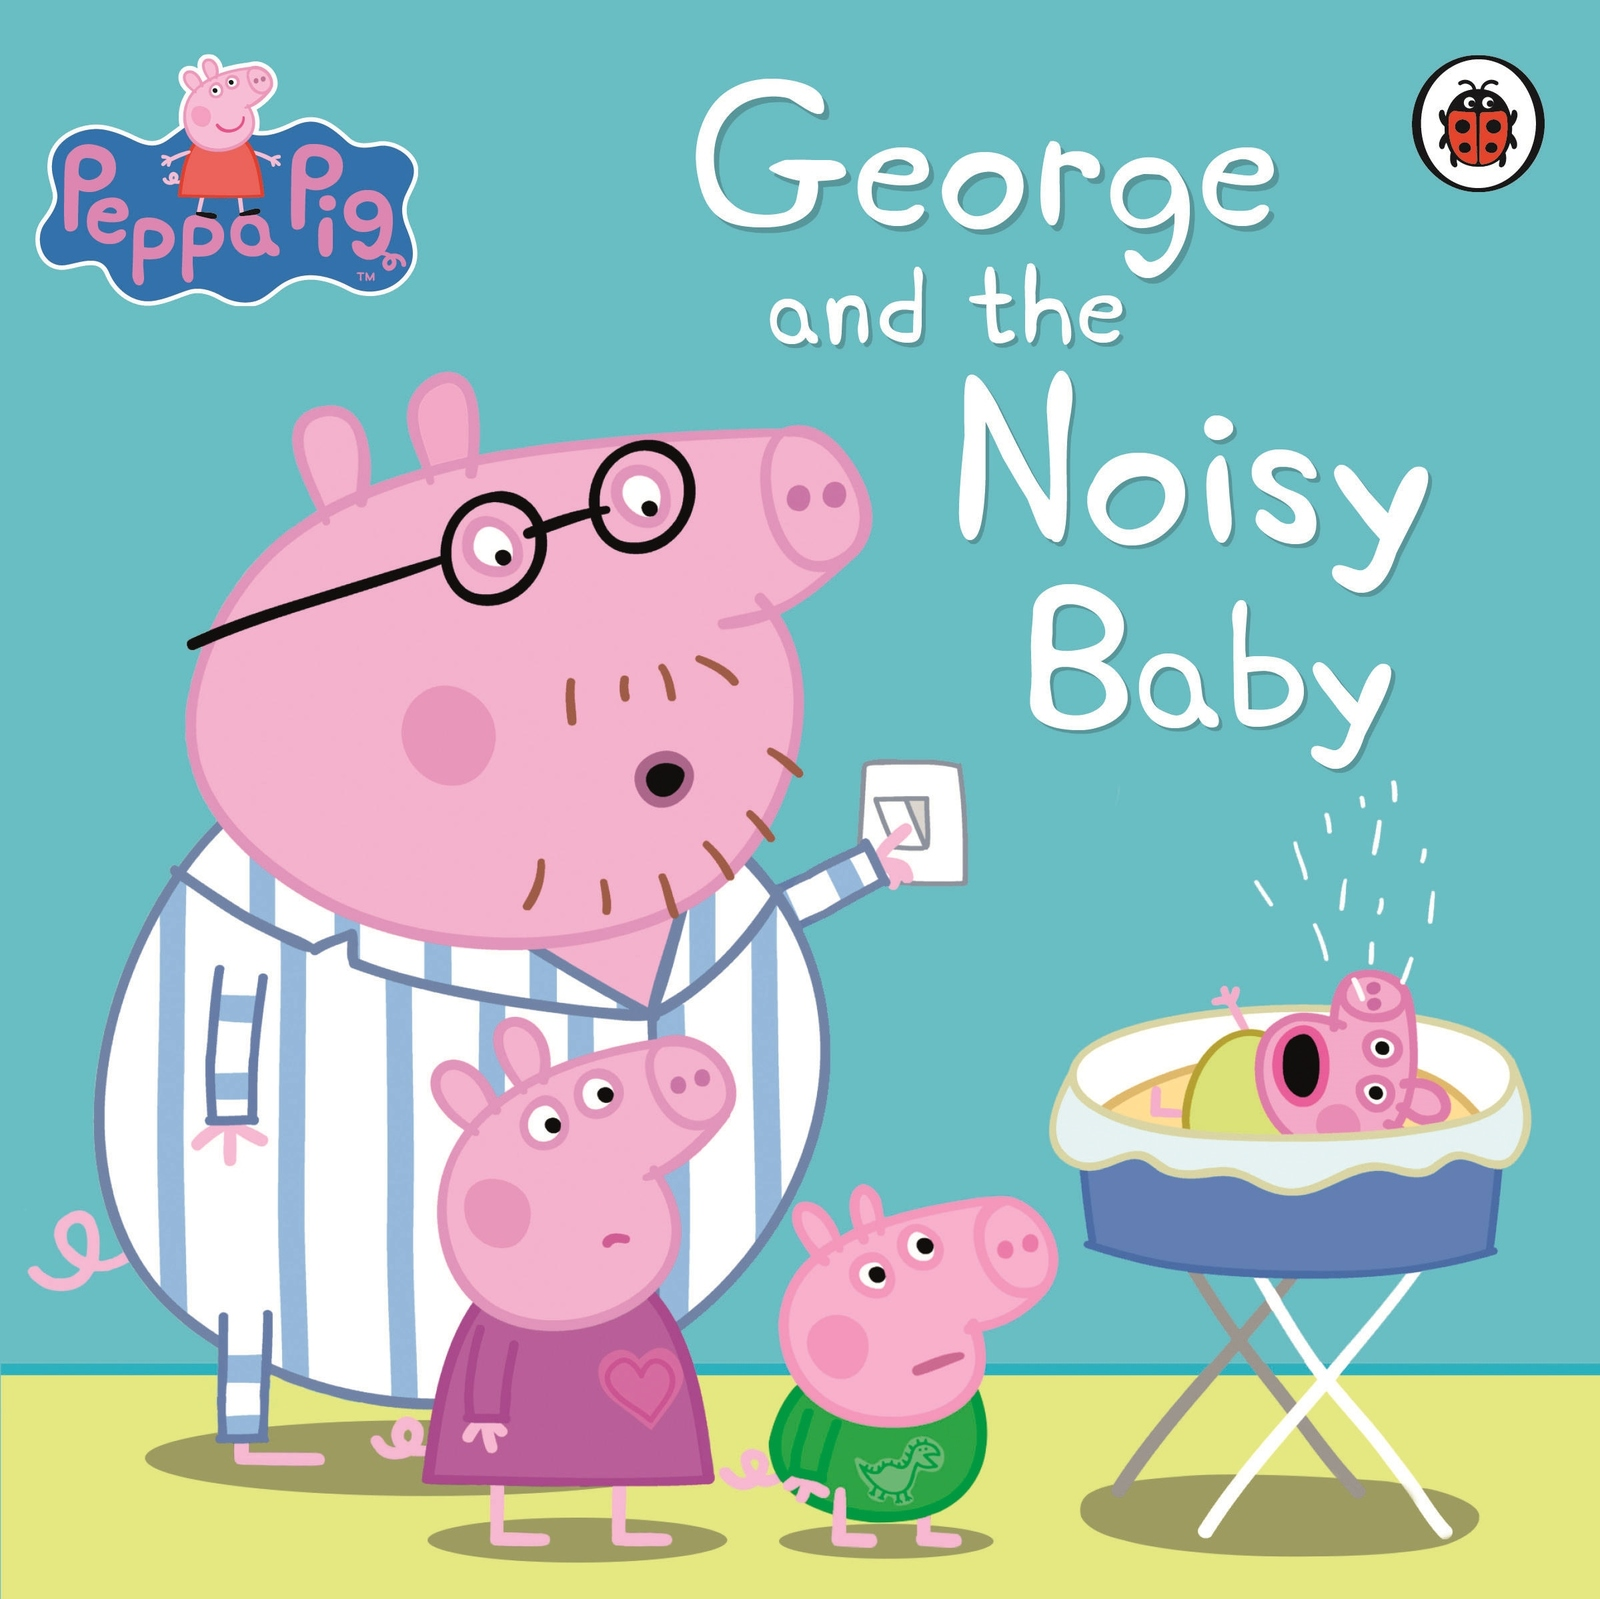 Peppa Pig: George and the Noisy Baby by Peppa Pig image